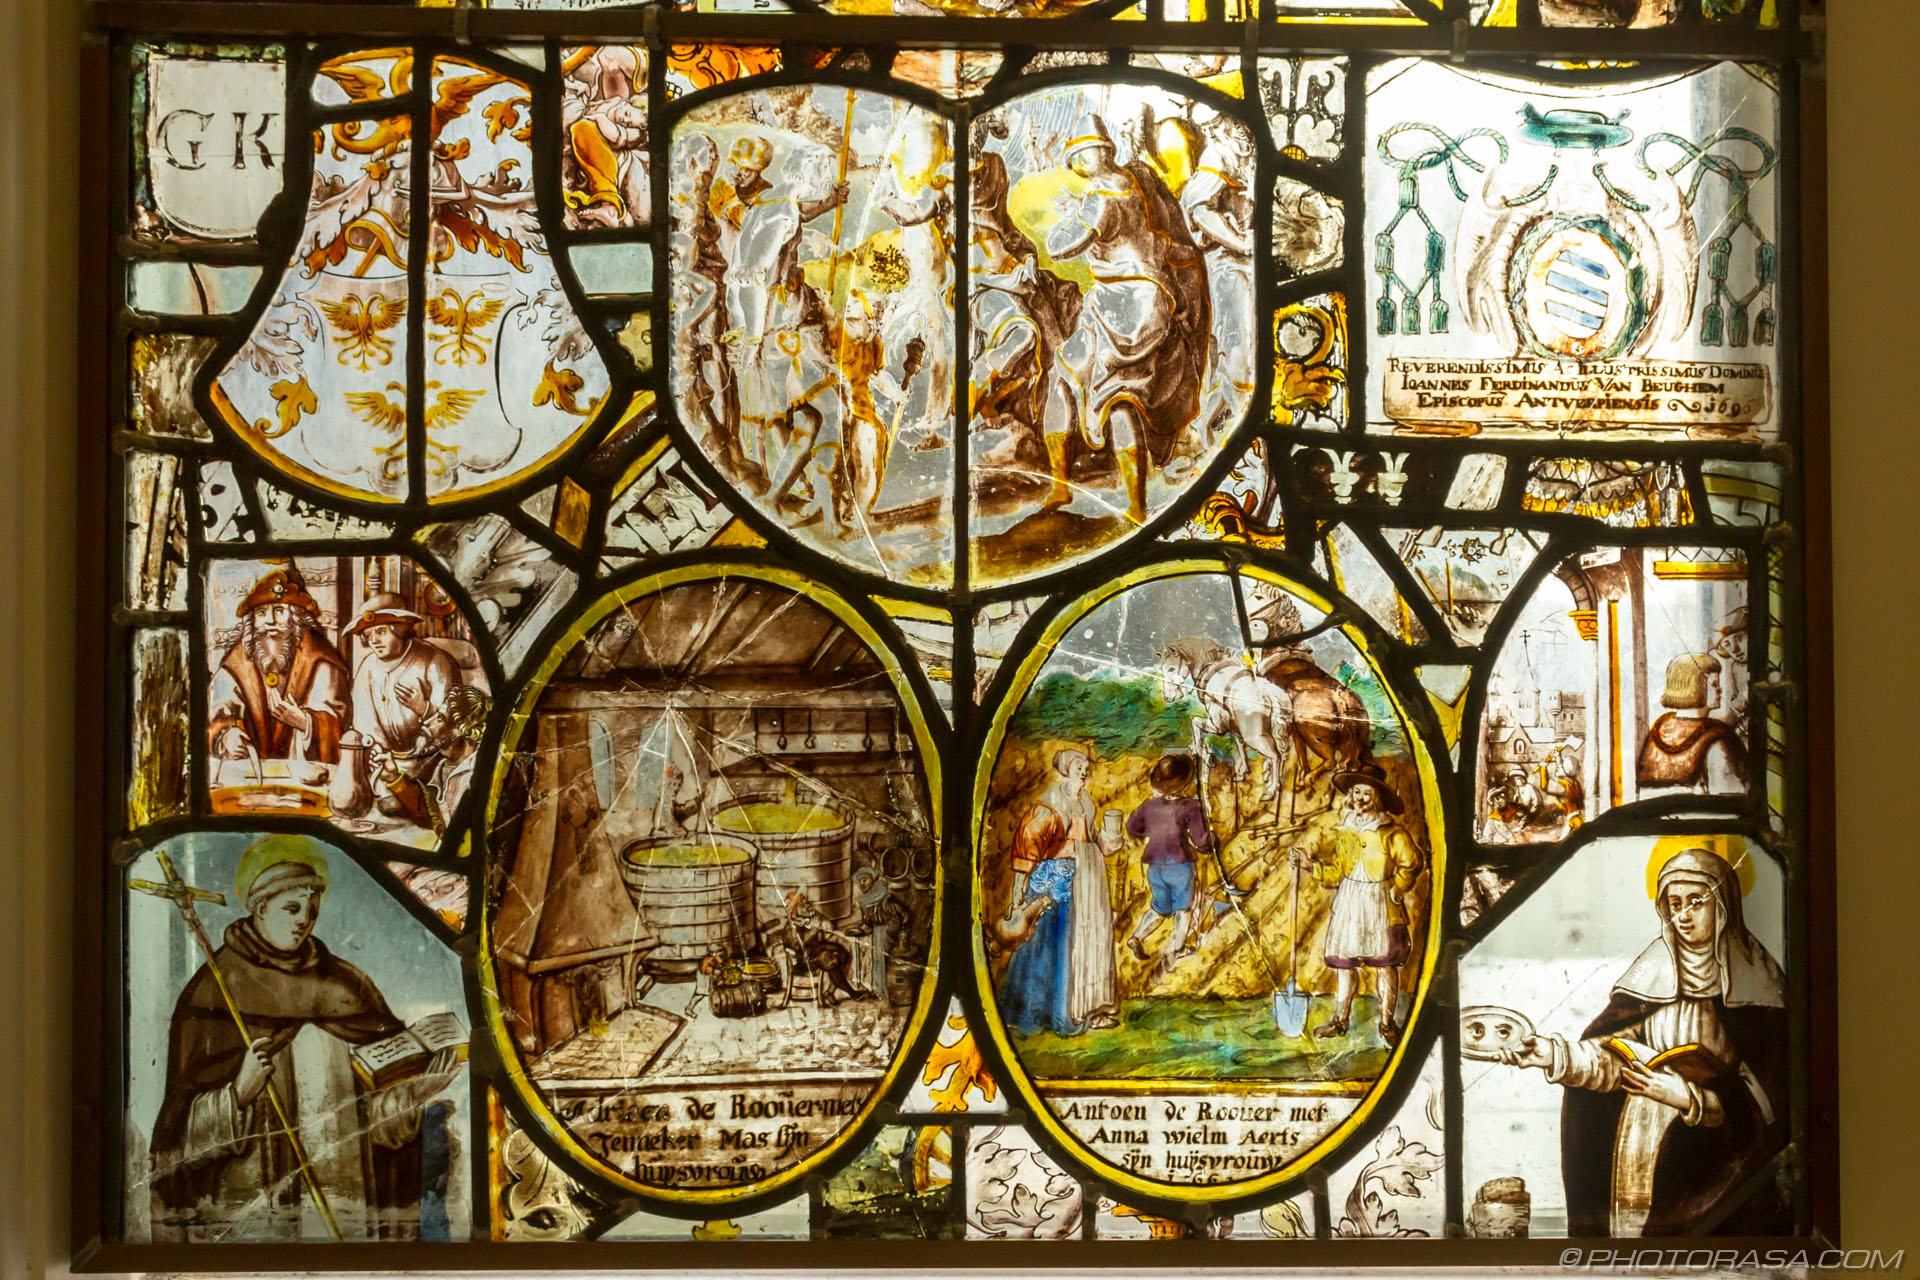 https://photorasa.com/old-dutch-and-flemish-stained-glass/stained-glass-of-farming-scenes-and-rural-workers/